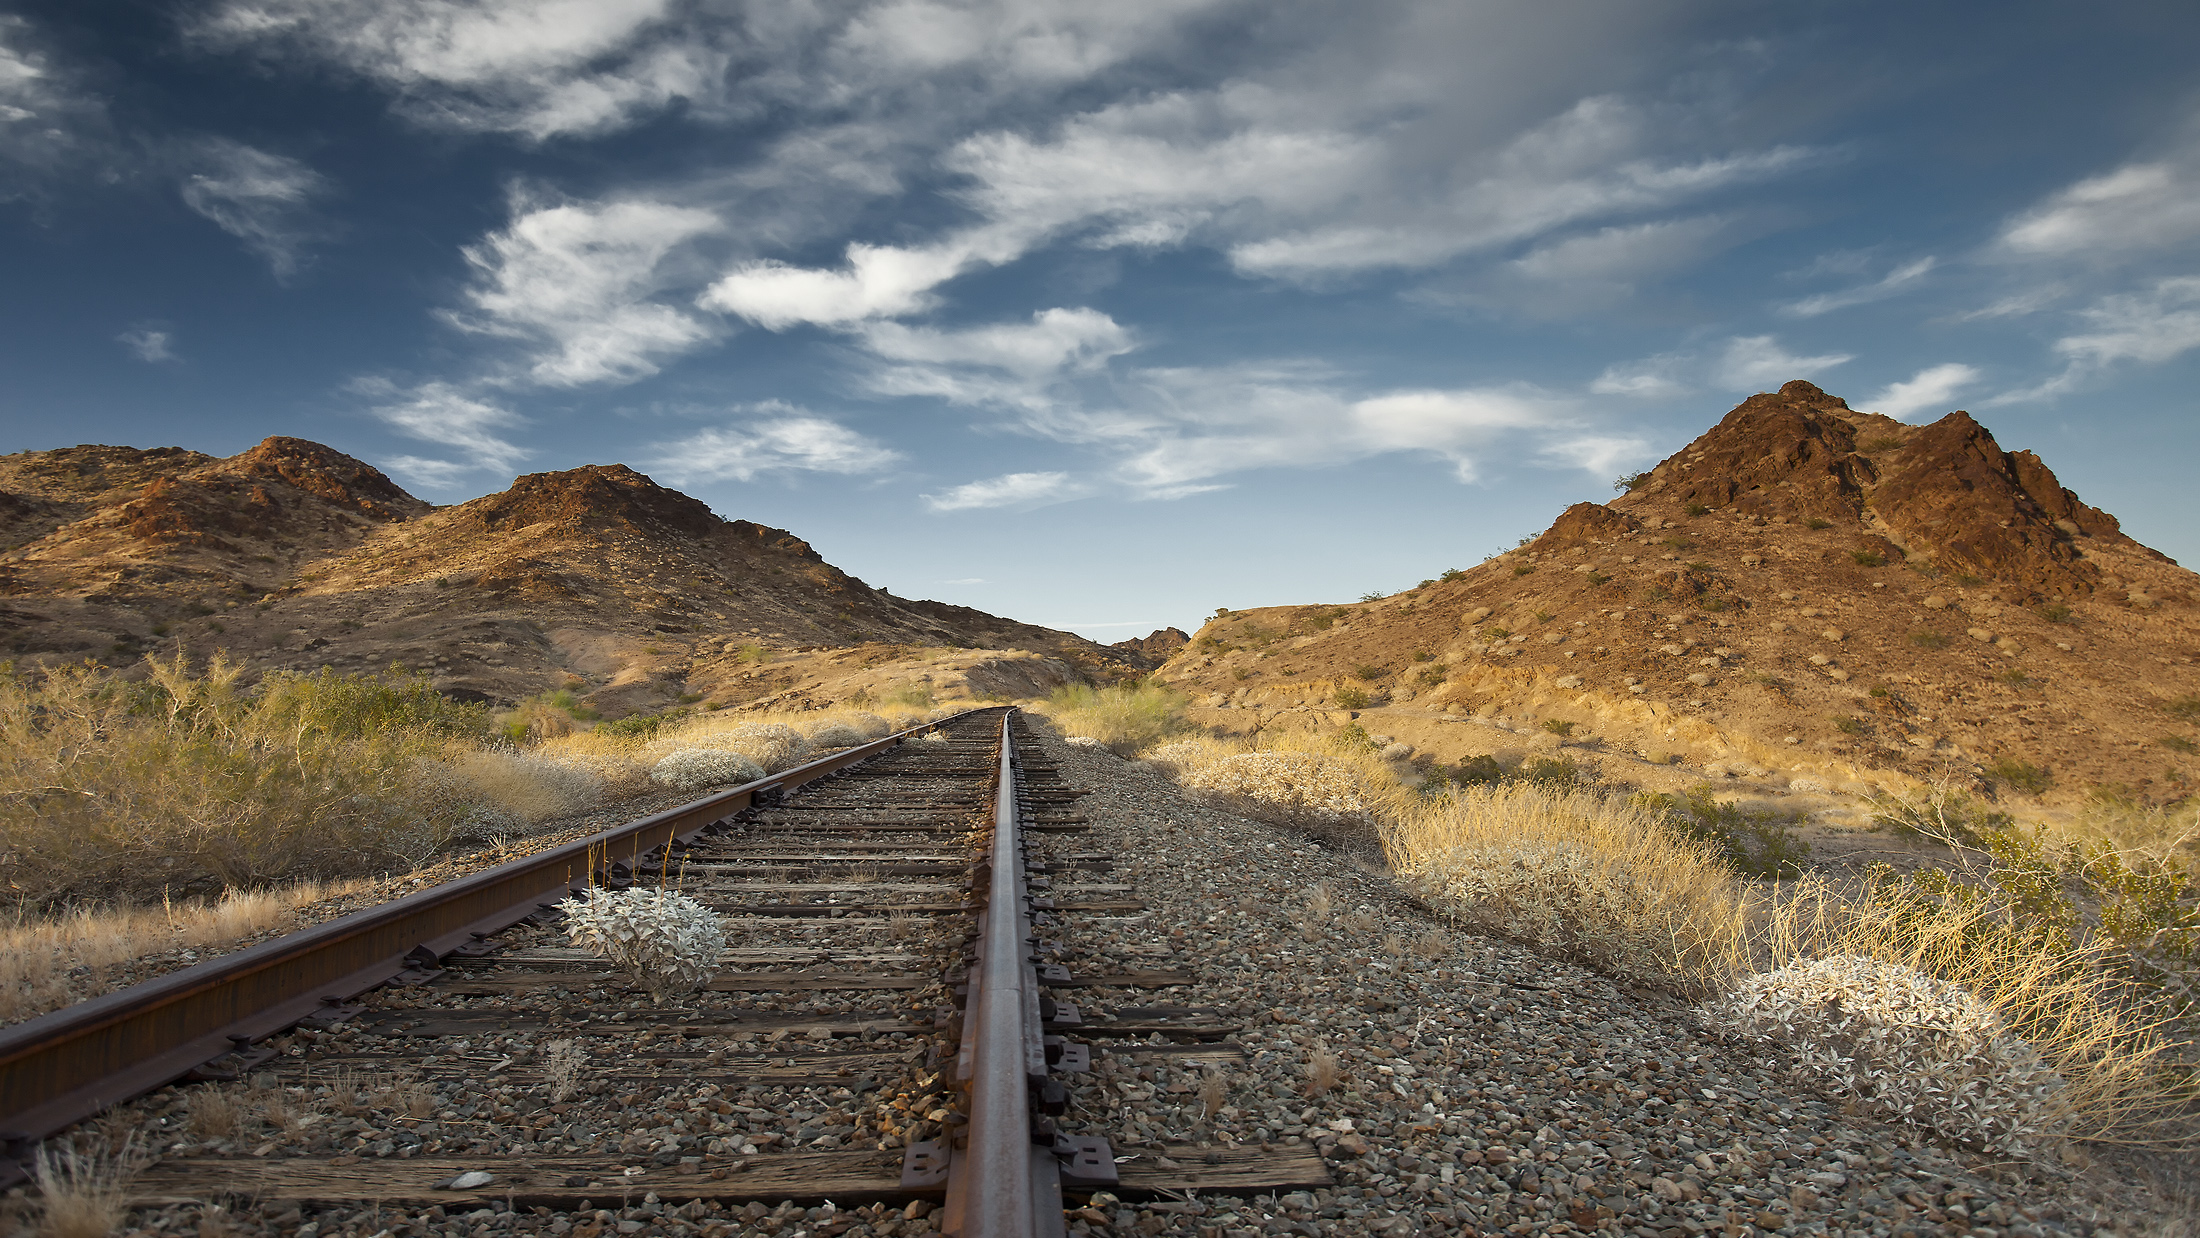 rail tracks in Arizona, United States